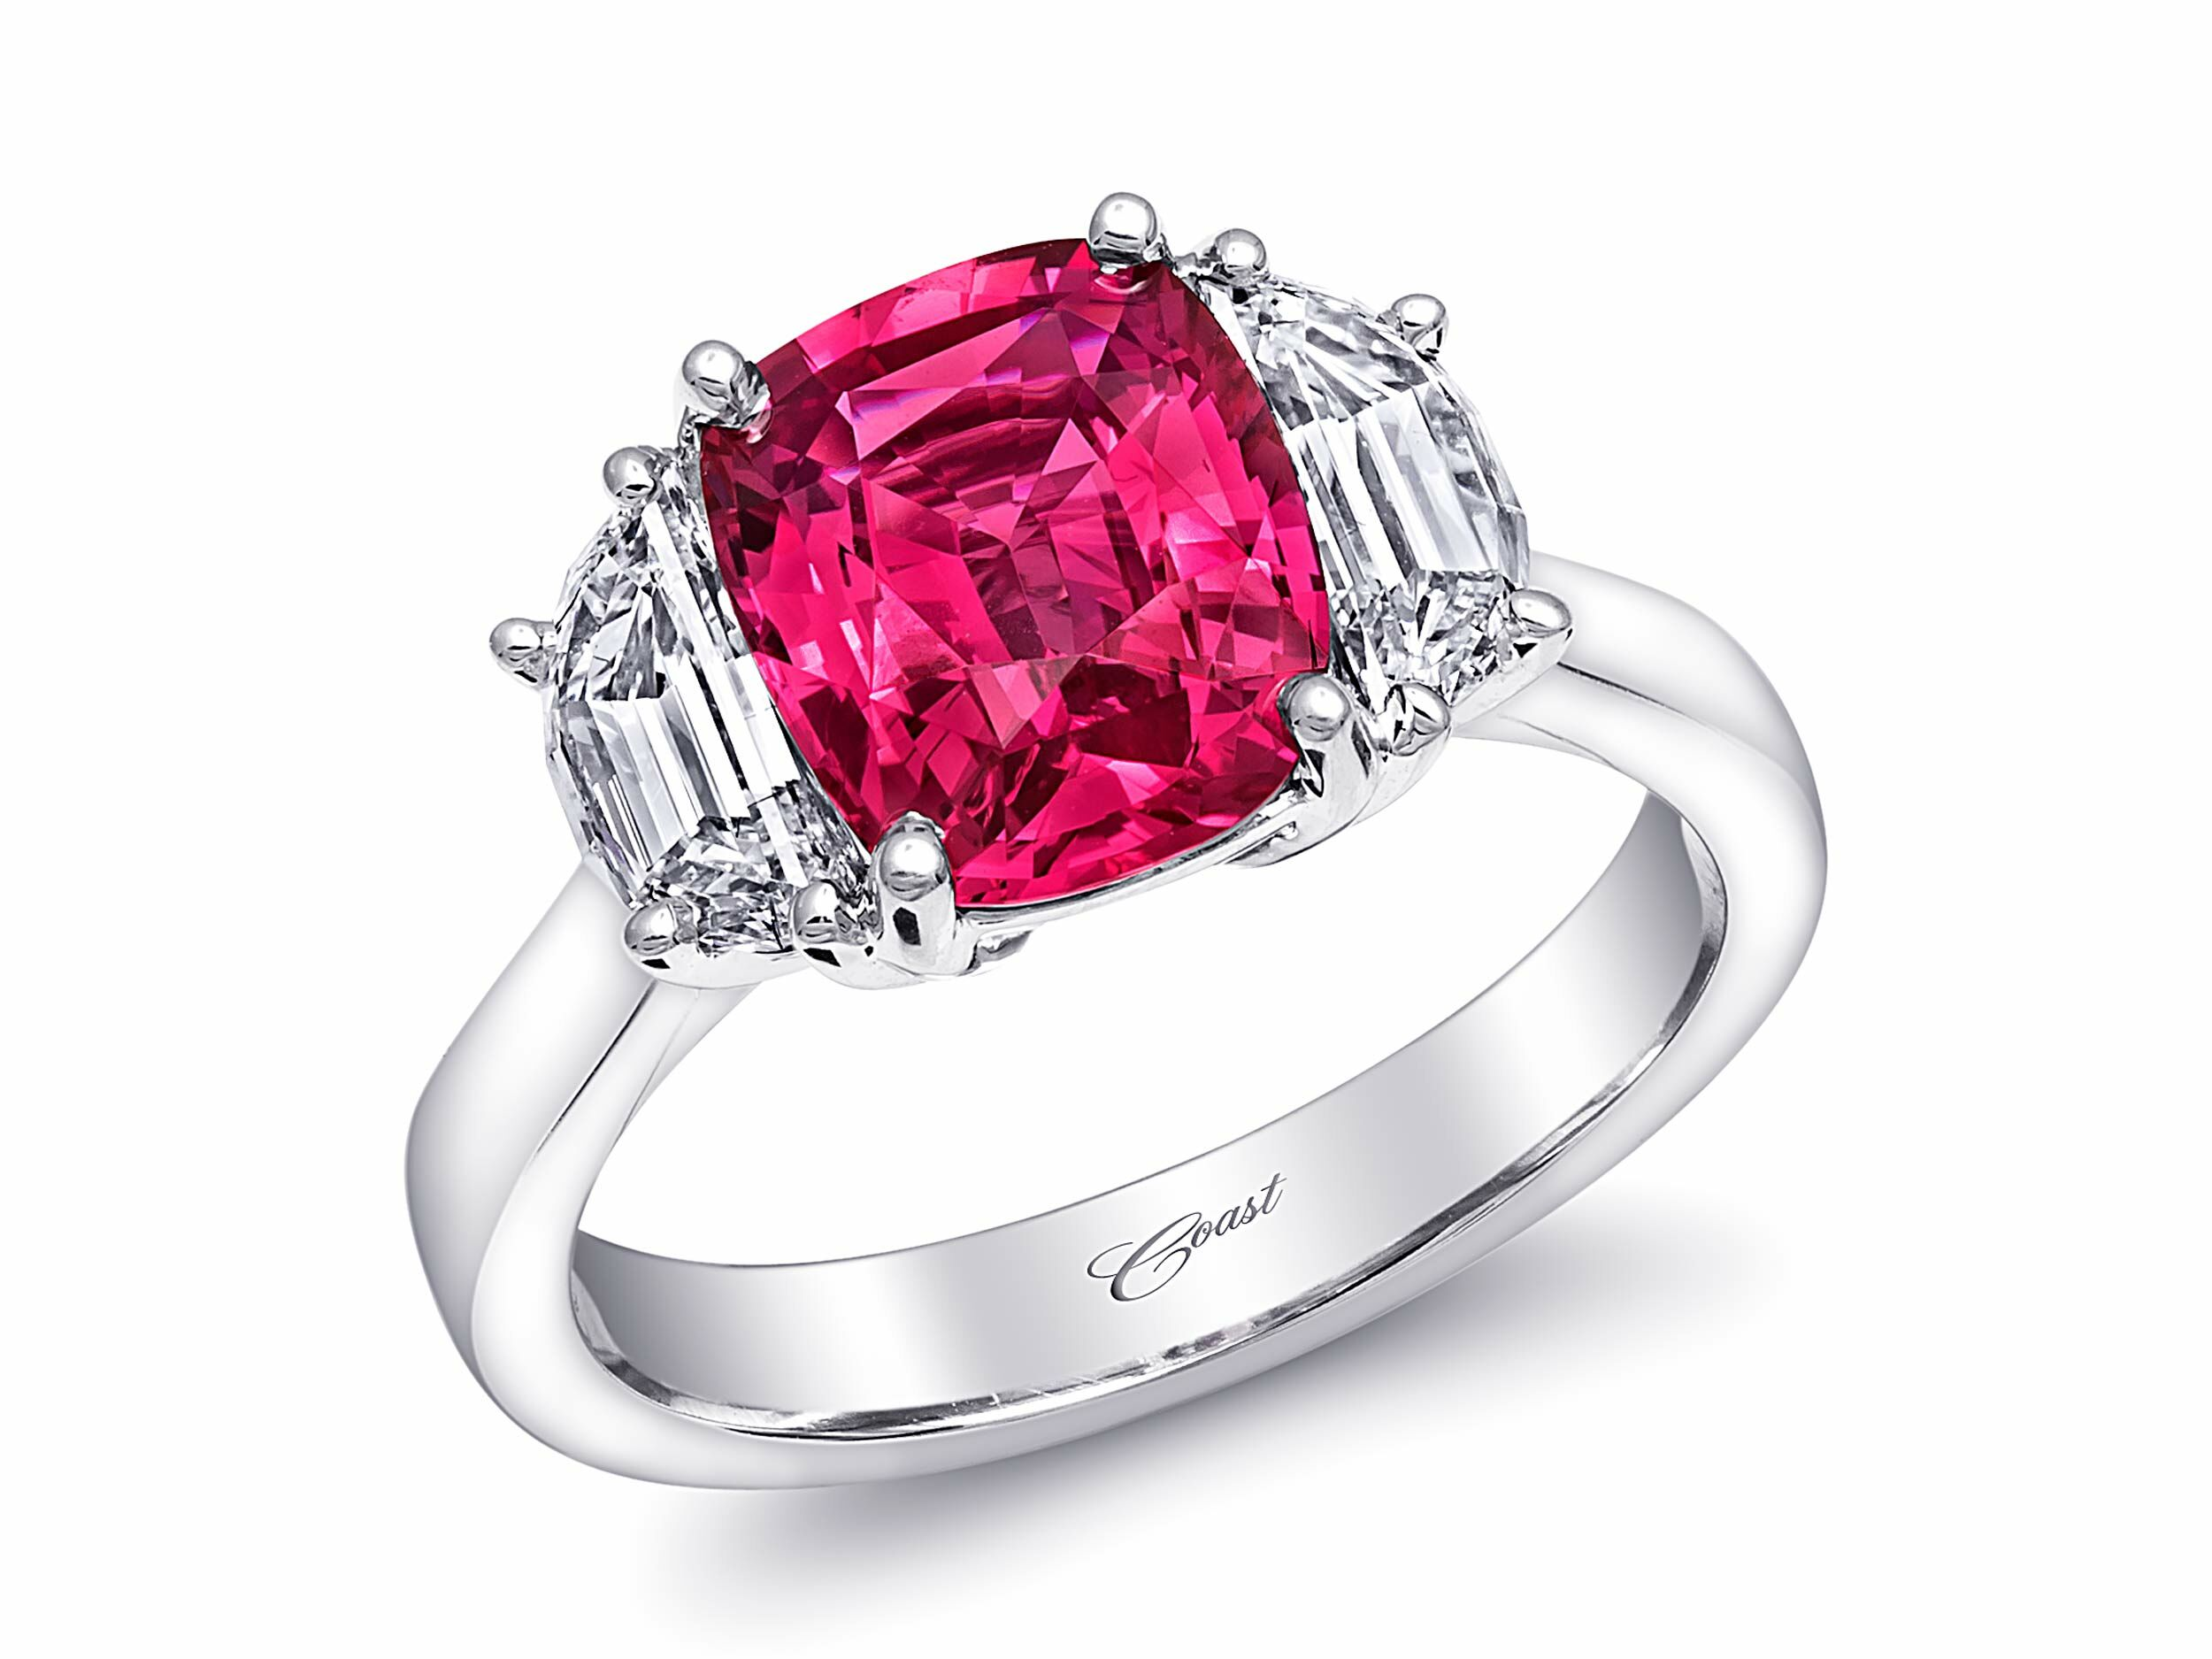 pink front diamonds ring forevermark rings lugaro fancy diamond stone collections colored engagement